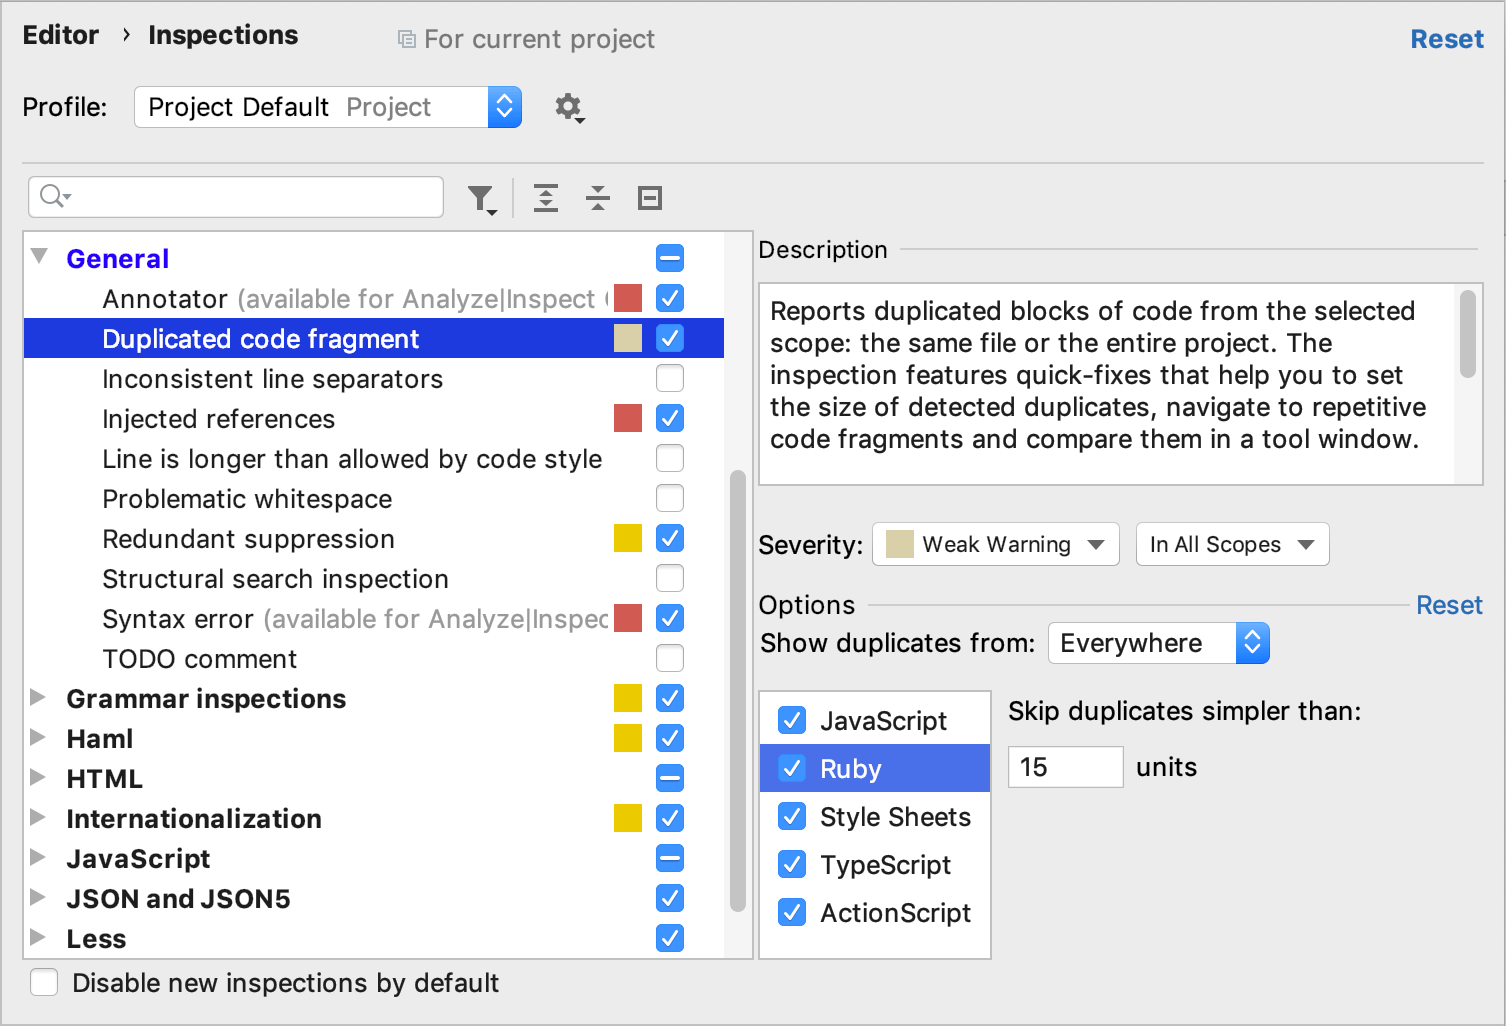 Duplicated Code Fragment inspection settings